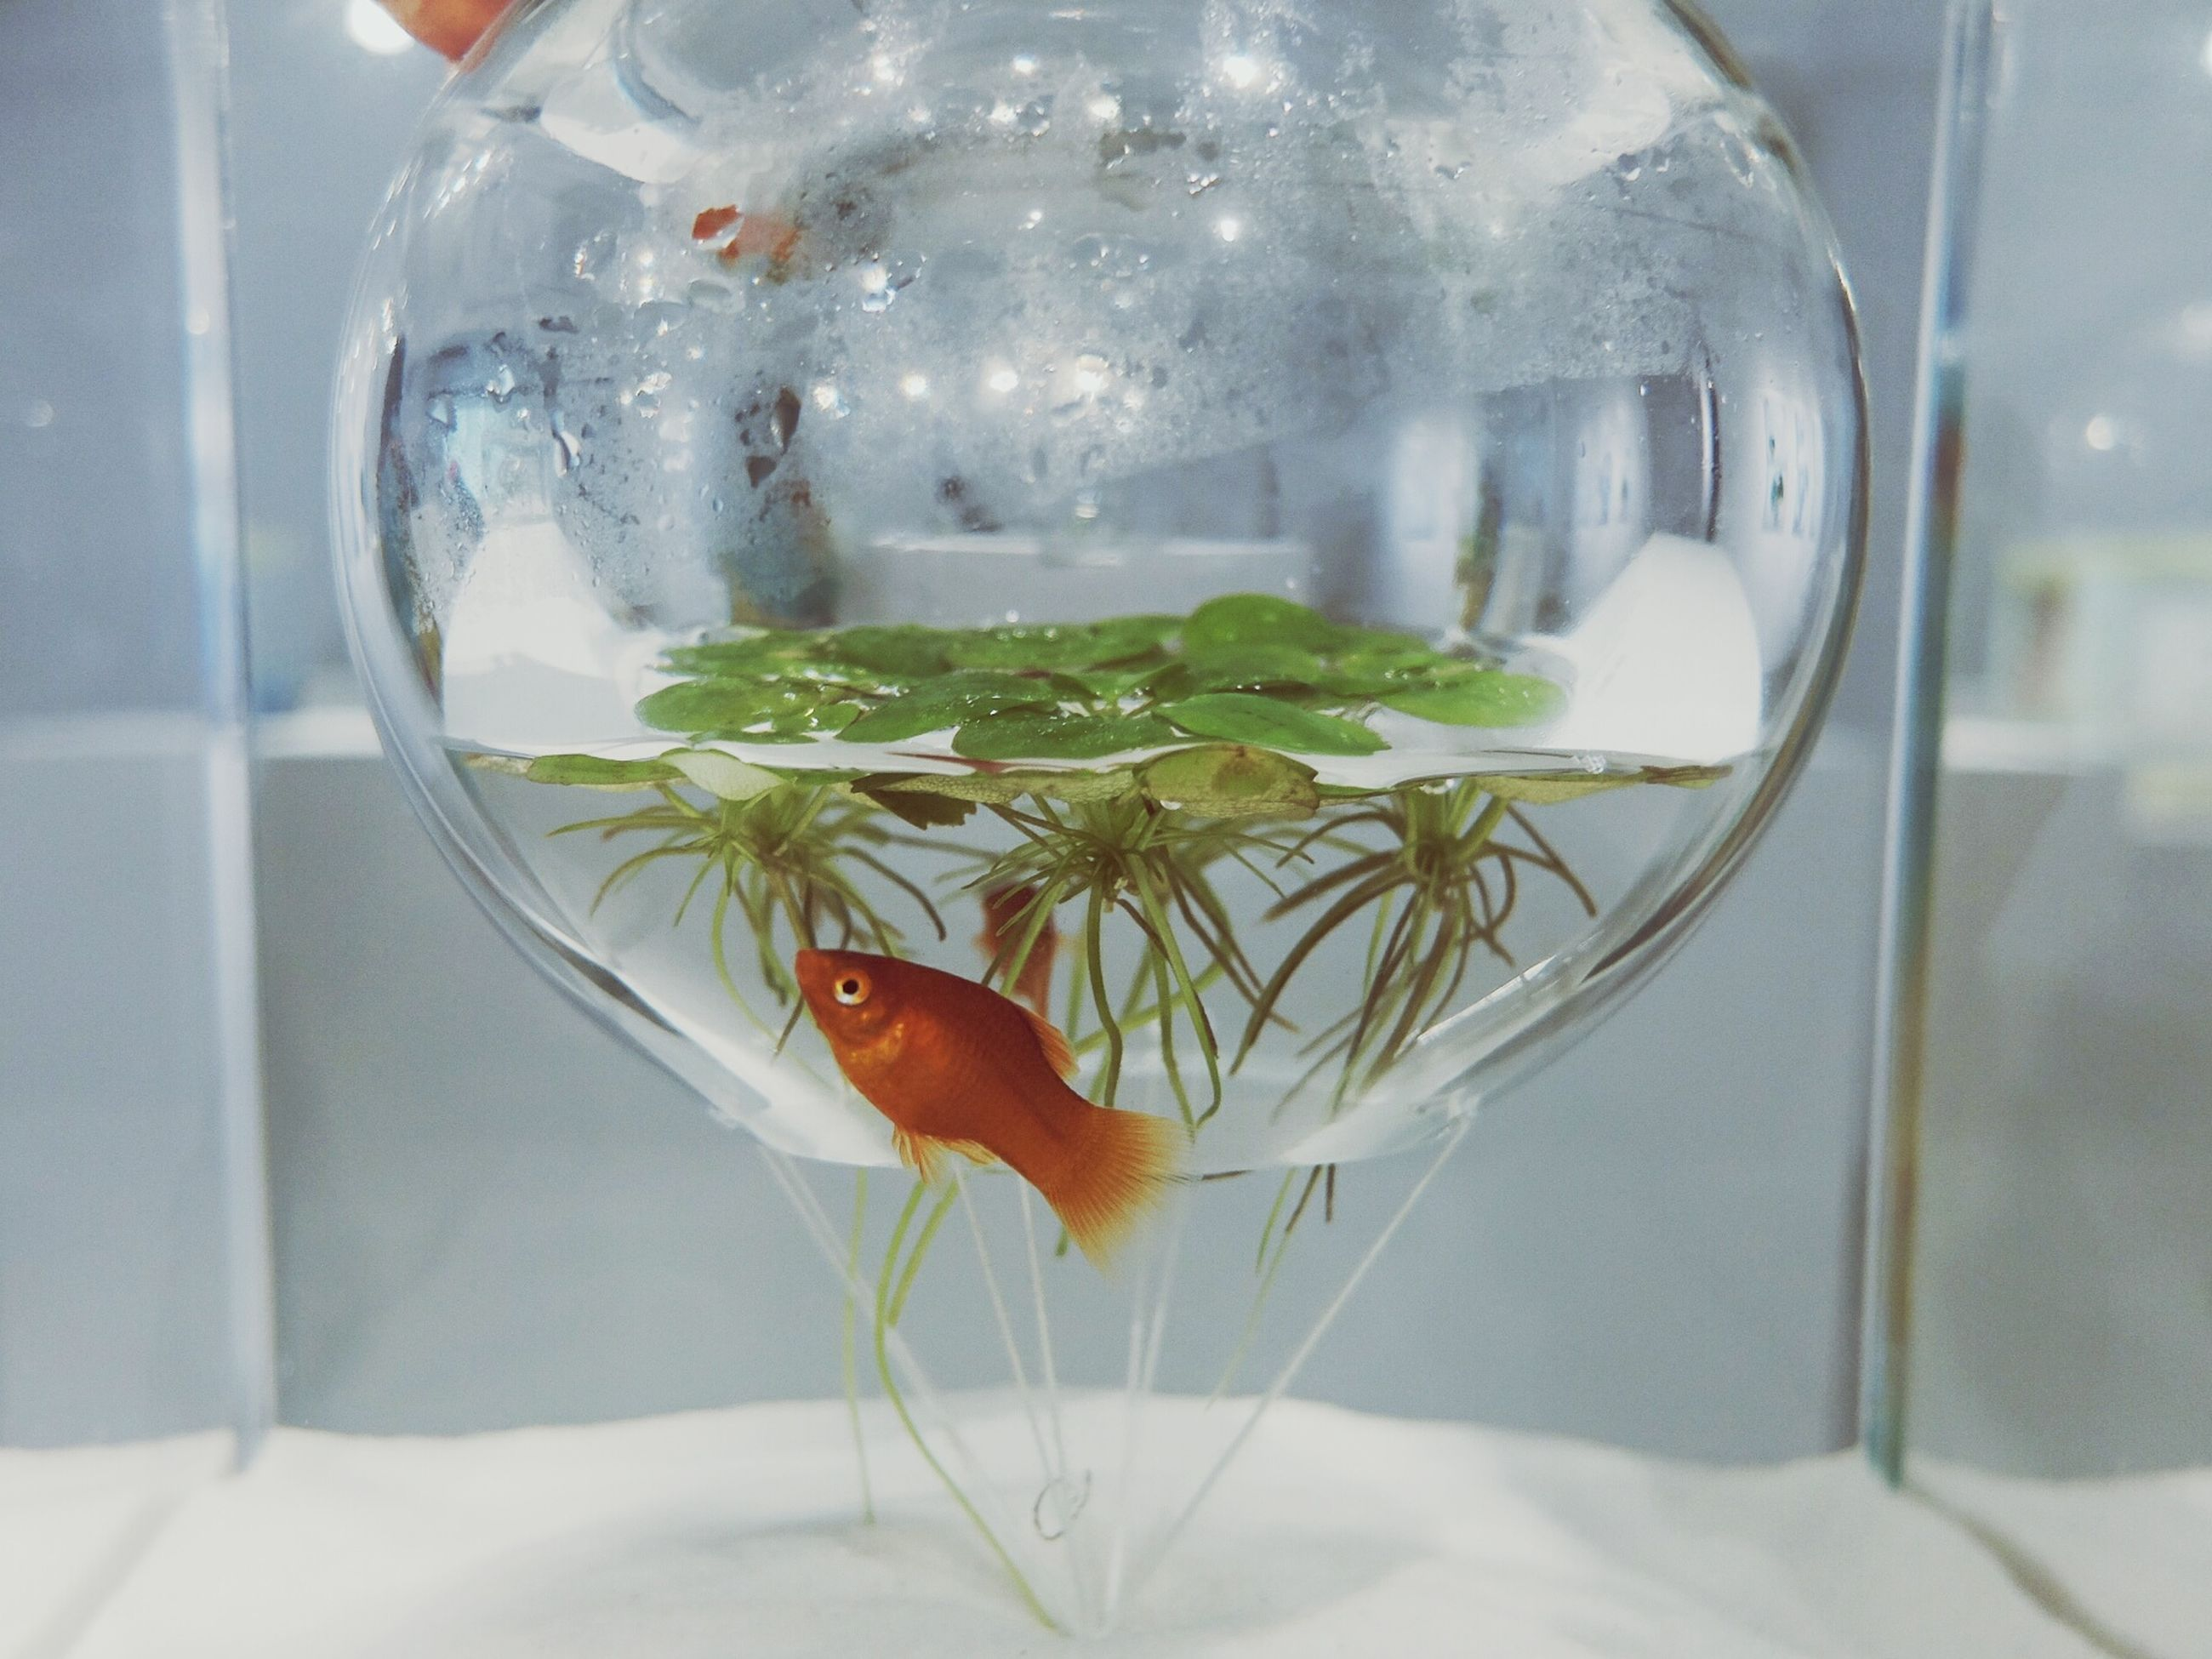 indoors, food and drink, glass - material, transparent, table, freshness, animal themes, drink, healthy eating, refreshment, drinking glass, food, glass, close-up, window, water, one animal, focus on foreground, fish, spoon